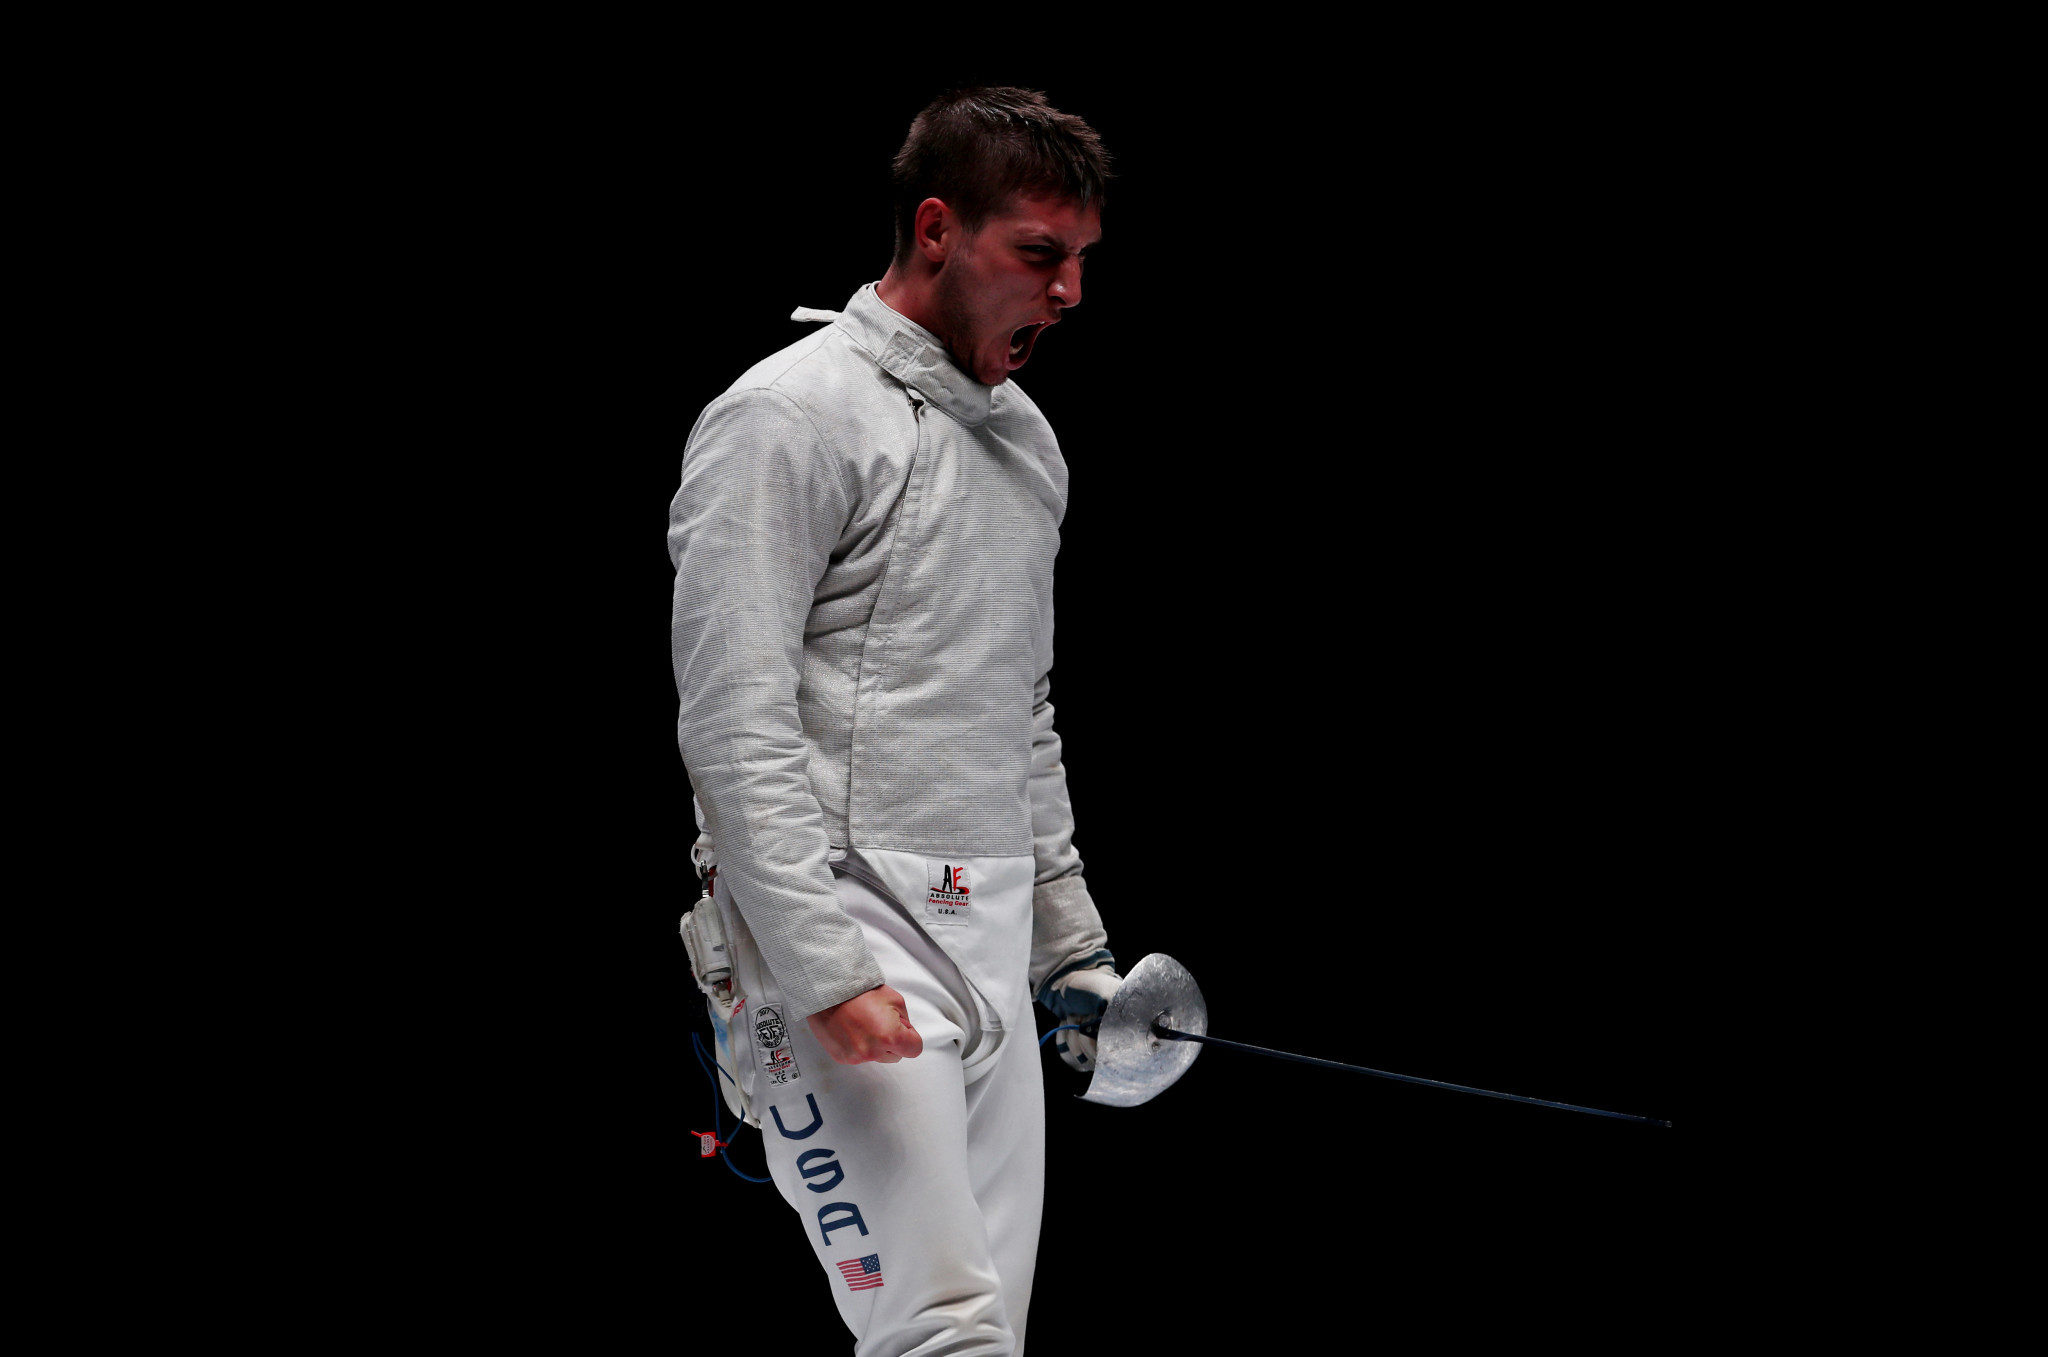 Eli Dershwitz was forced to settle for the silver medal at the latest Sabre Grand Prix ©Getty Images